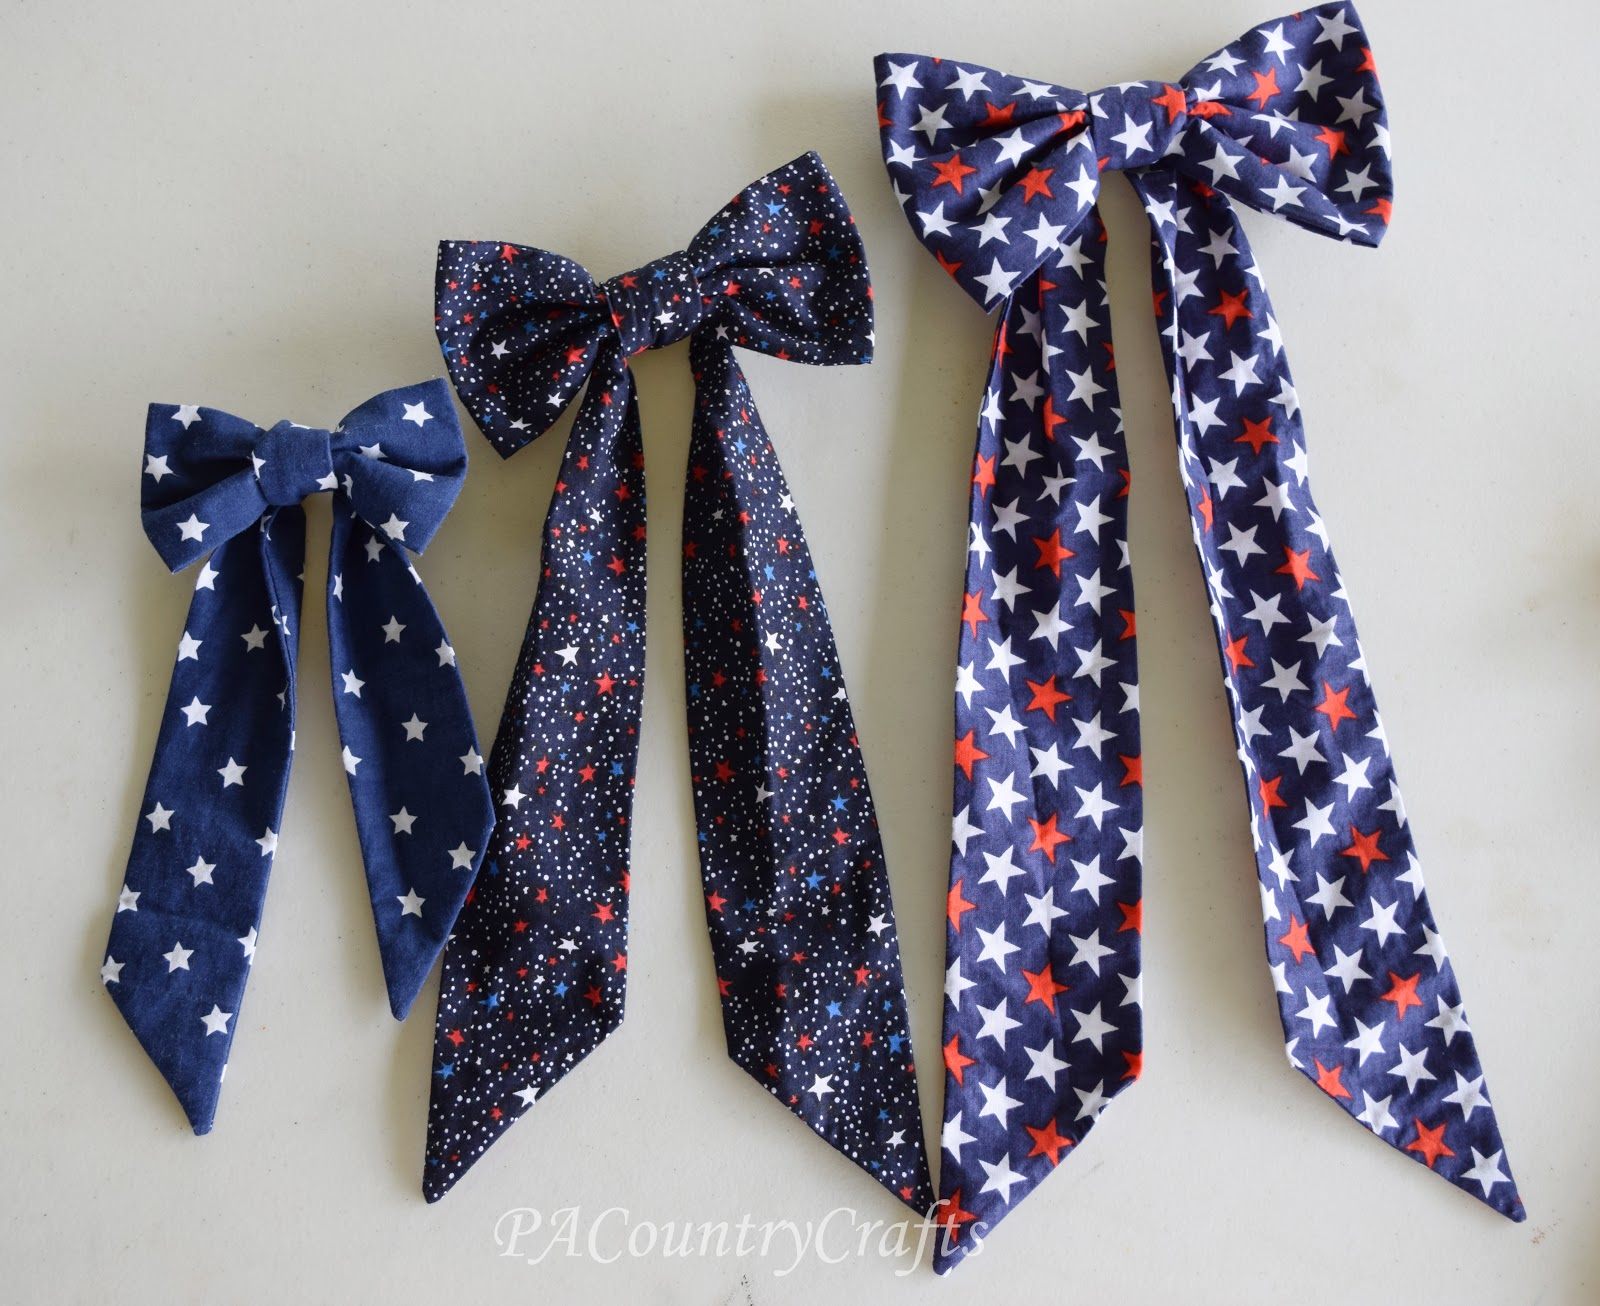 Diy fabric bow pattern and tutorial pa country crafts the small one would even work with a small loop instead of a long tie to make a hair bow or adapt it to make a bow tie jeuxipadfo Images